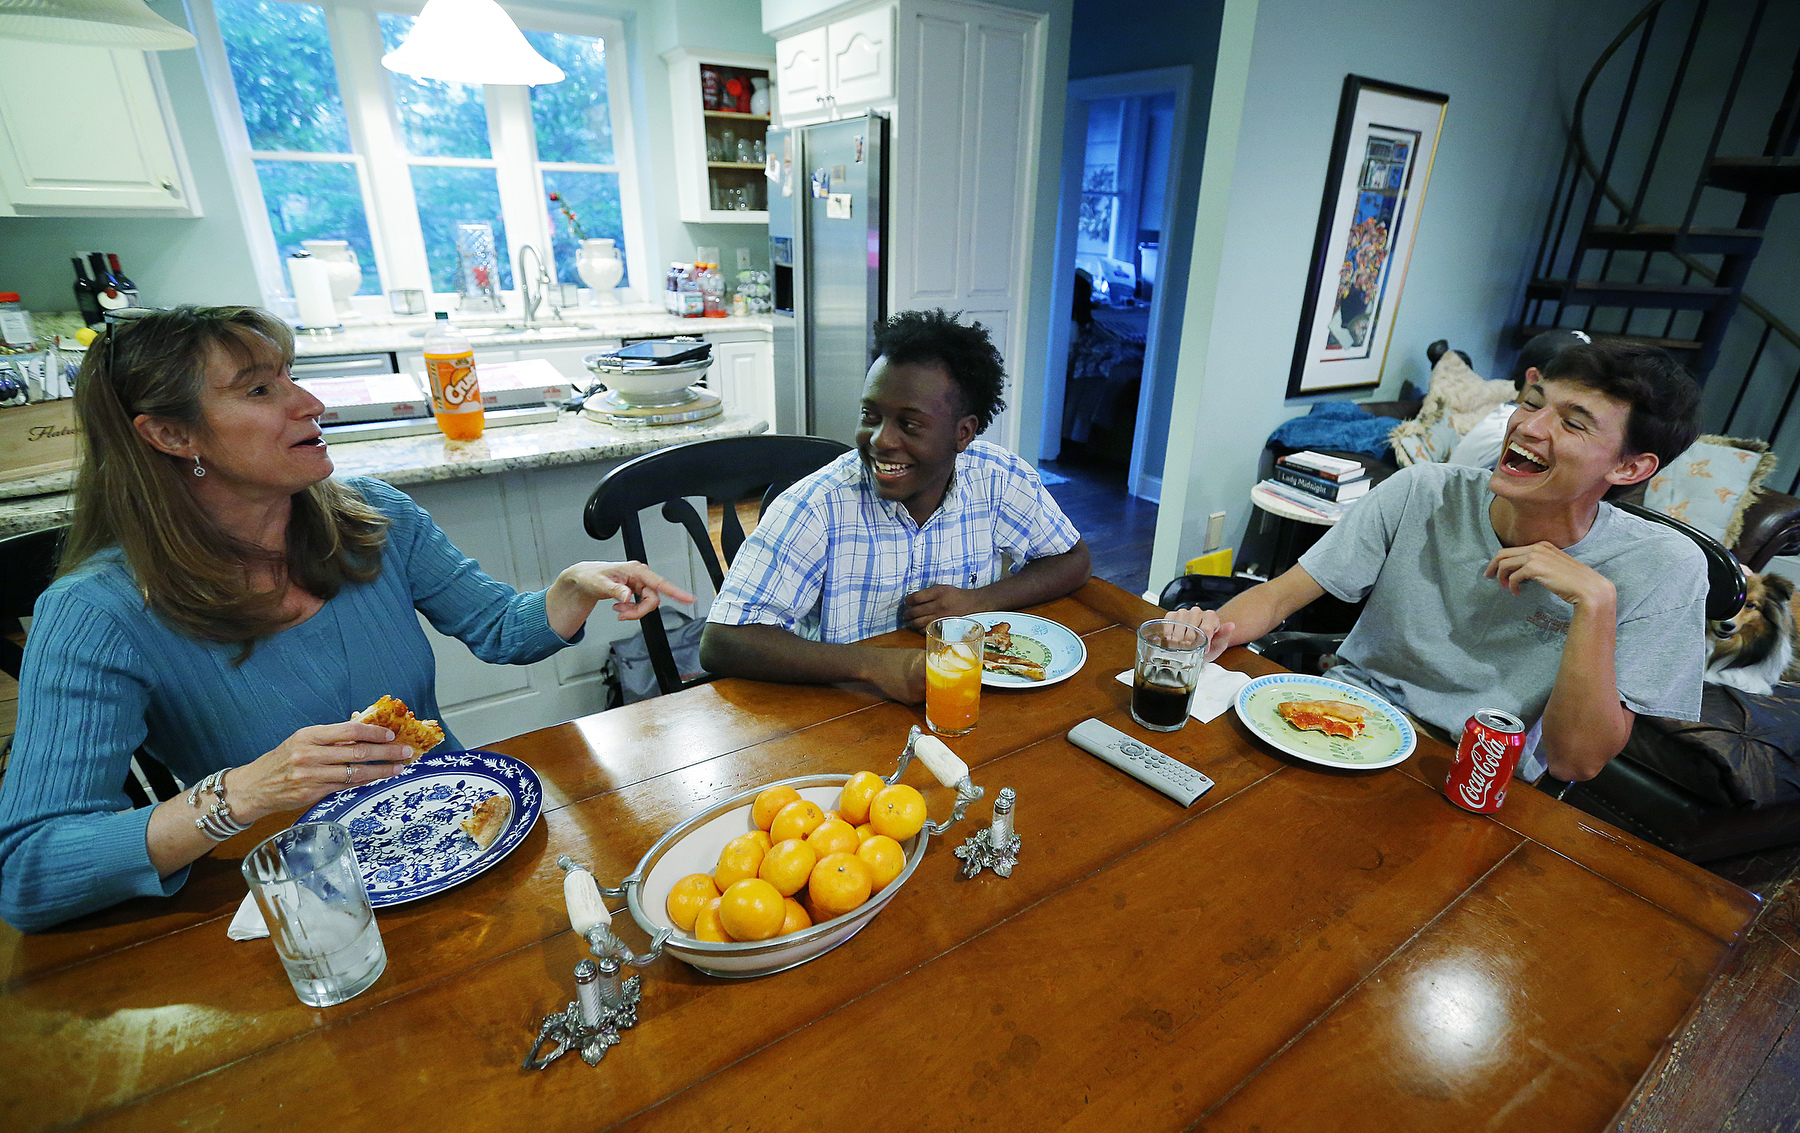 May 10, 2016 - Donovan Borum  (center) shares a laugh at the dinner table with Ann and Carter Burgess. Donovan and Carter were paired together as cross-campus buddies in kindergarten in a program to begin establishing relationships between the primarily white Germantown campus and primarily African-American Memphis campus before the two campuses merged in Collierville for middle and high school. When Borum's family had to relocate to Savannah, Georgia, in October 2014 the Burgess family stepped in and housed him so he could finish his education at St. George's. {quote}They treat me as if I am one of their own.{quote} he said. (Mike Brown/The Commercial Appeal)